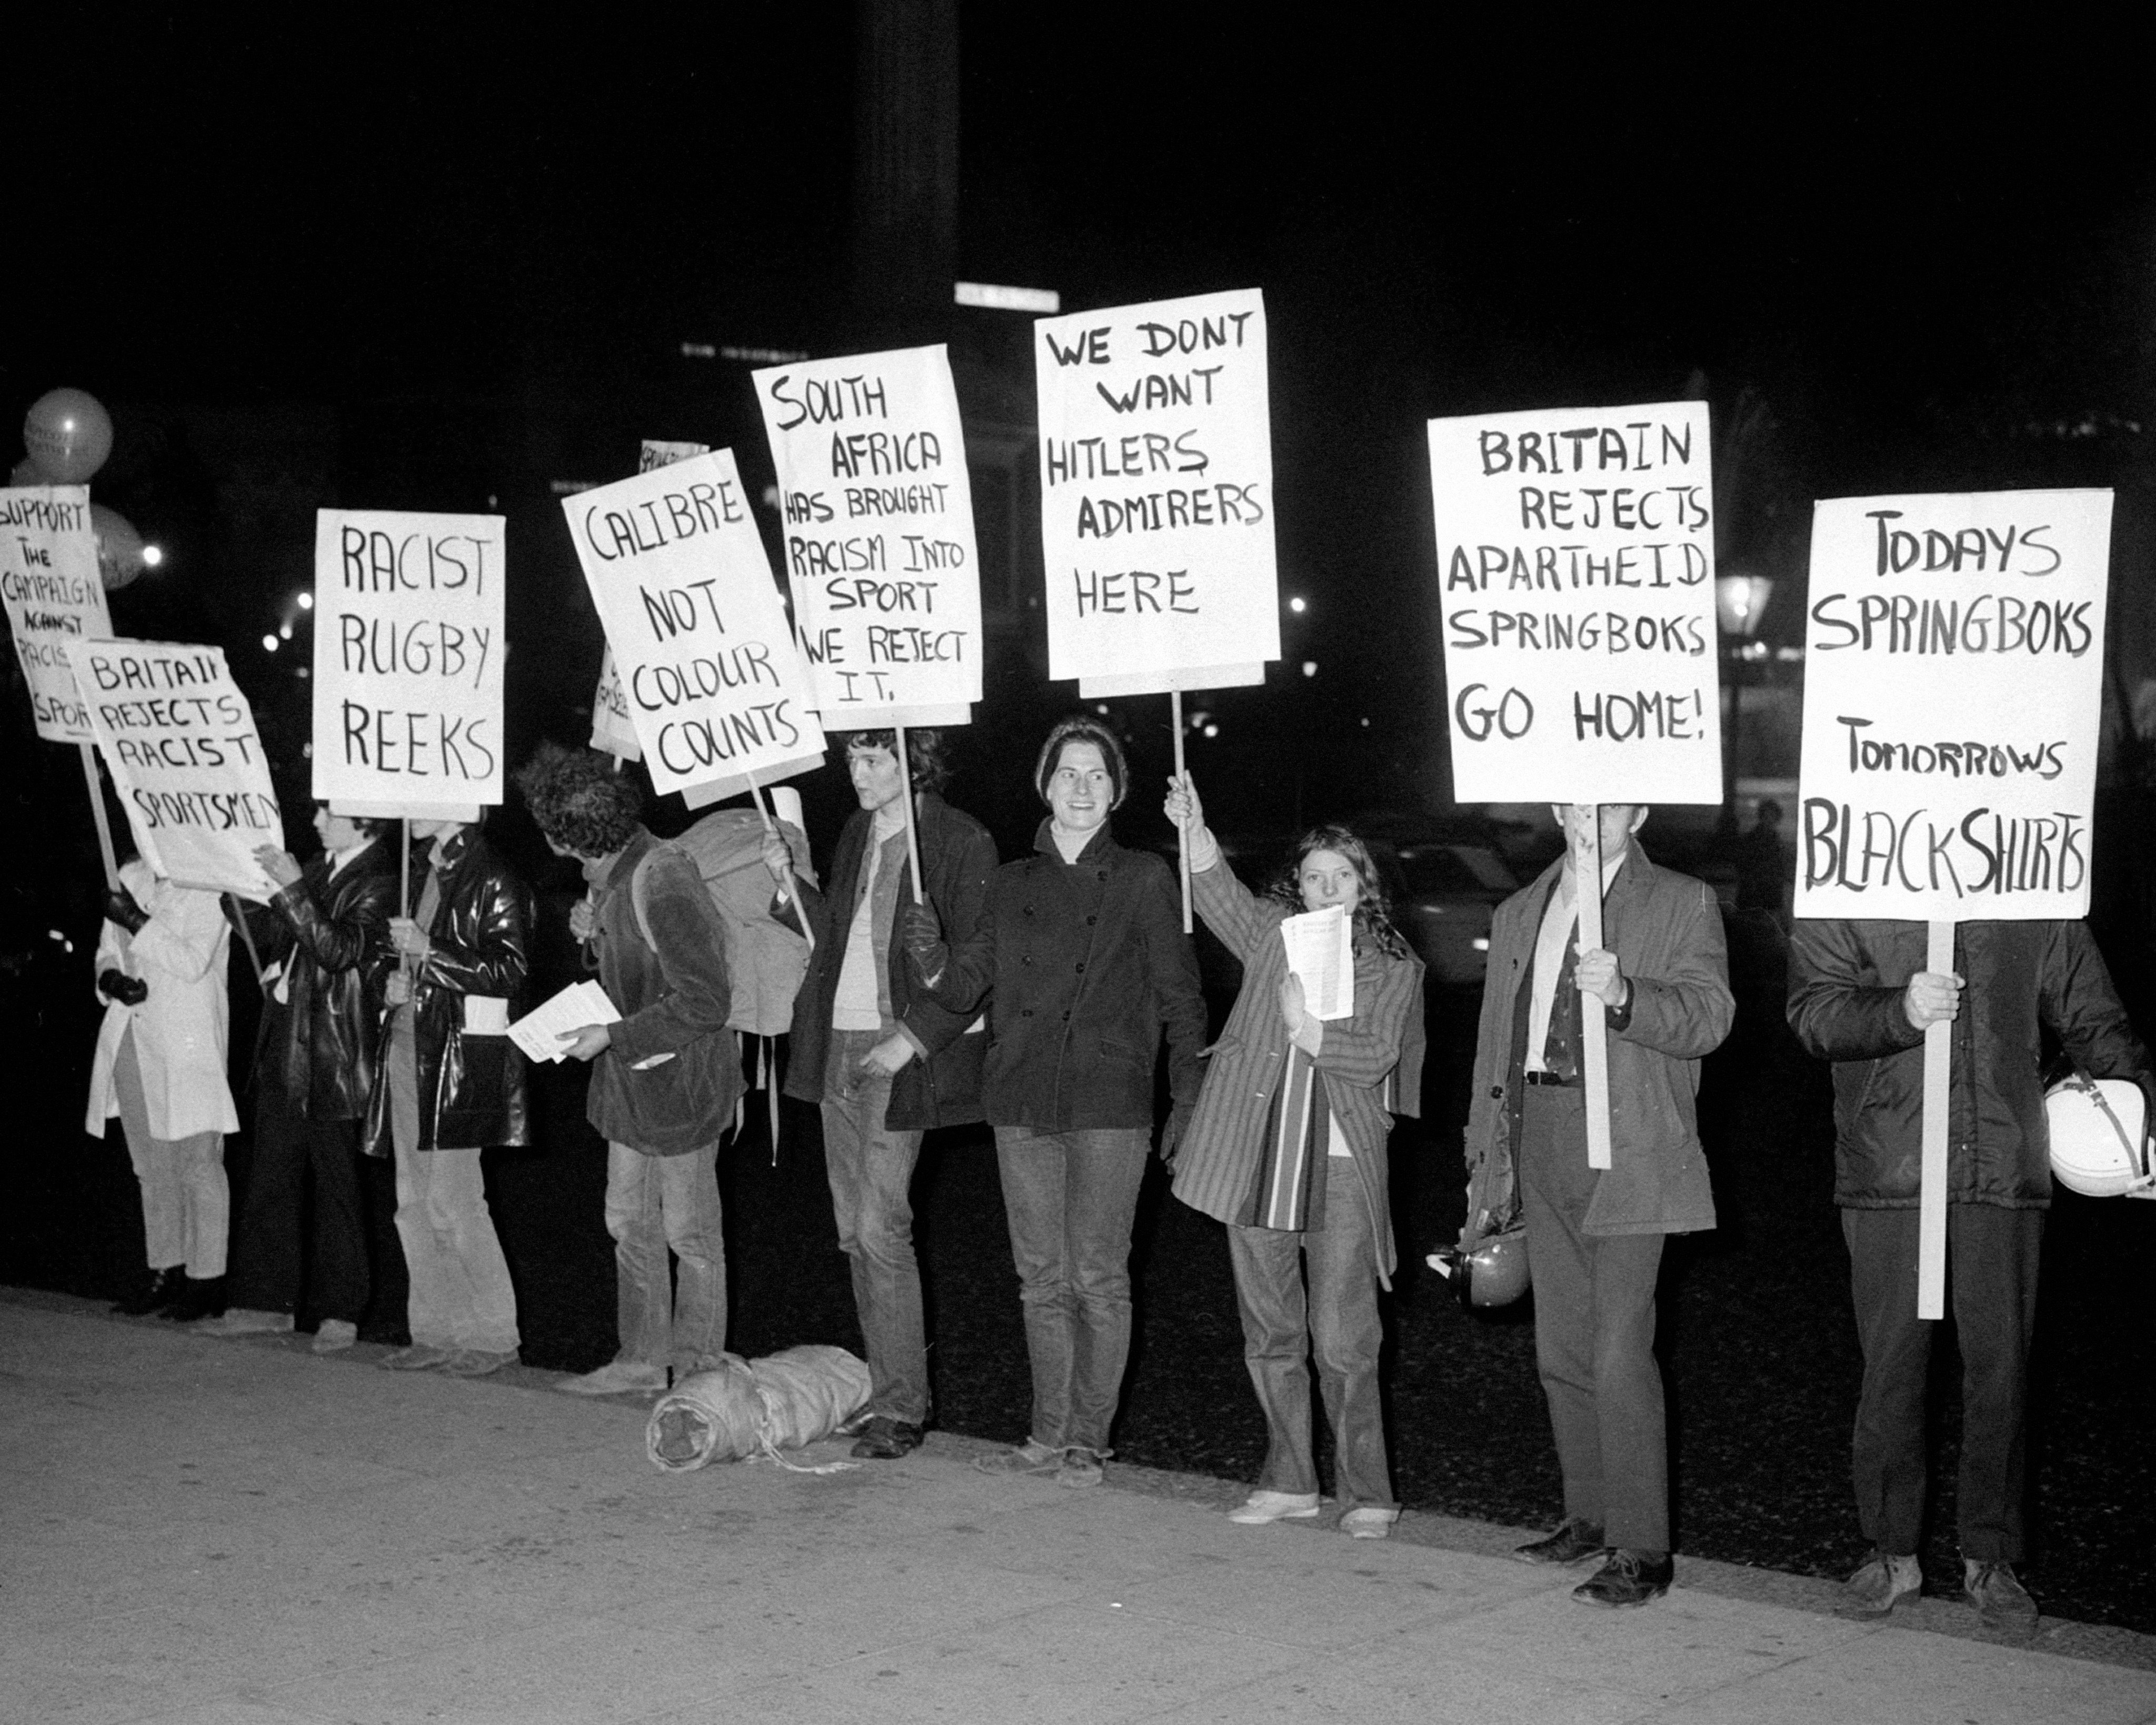 Anti-Apartheid protestors with placards outside the South African Embassy in Trafalgar Square, London, where the South African Ambassador Dr. Hendrik G. Luttig held a reception for the team.